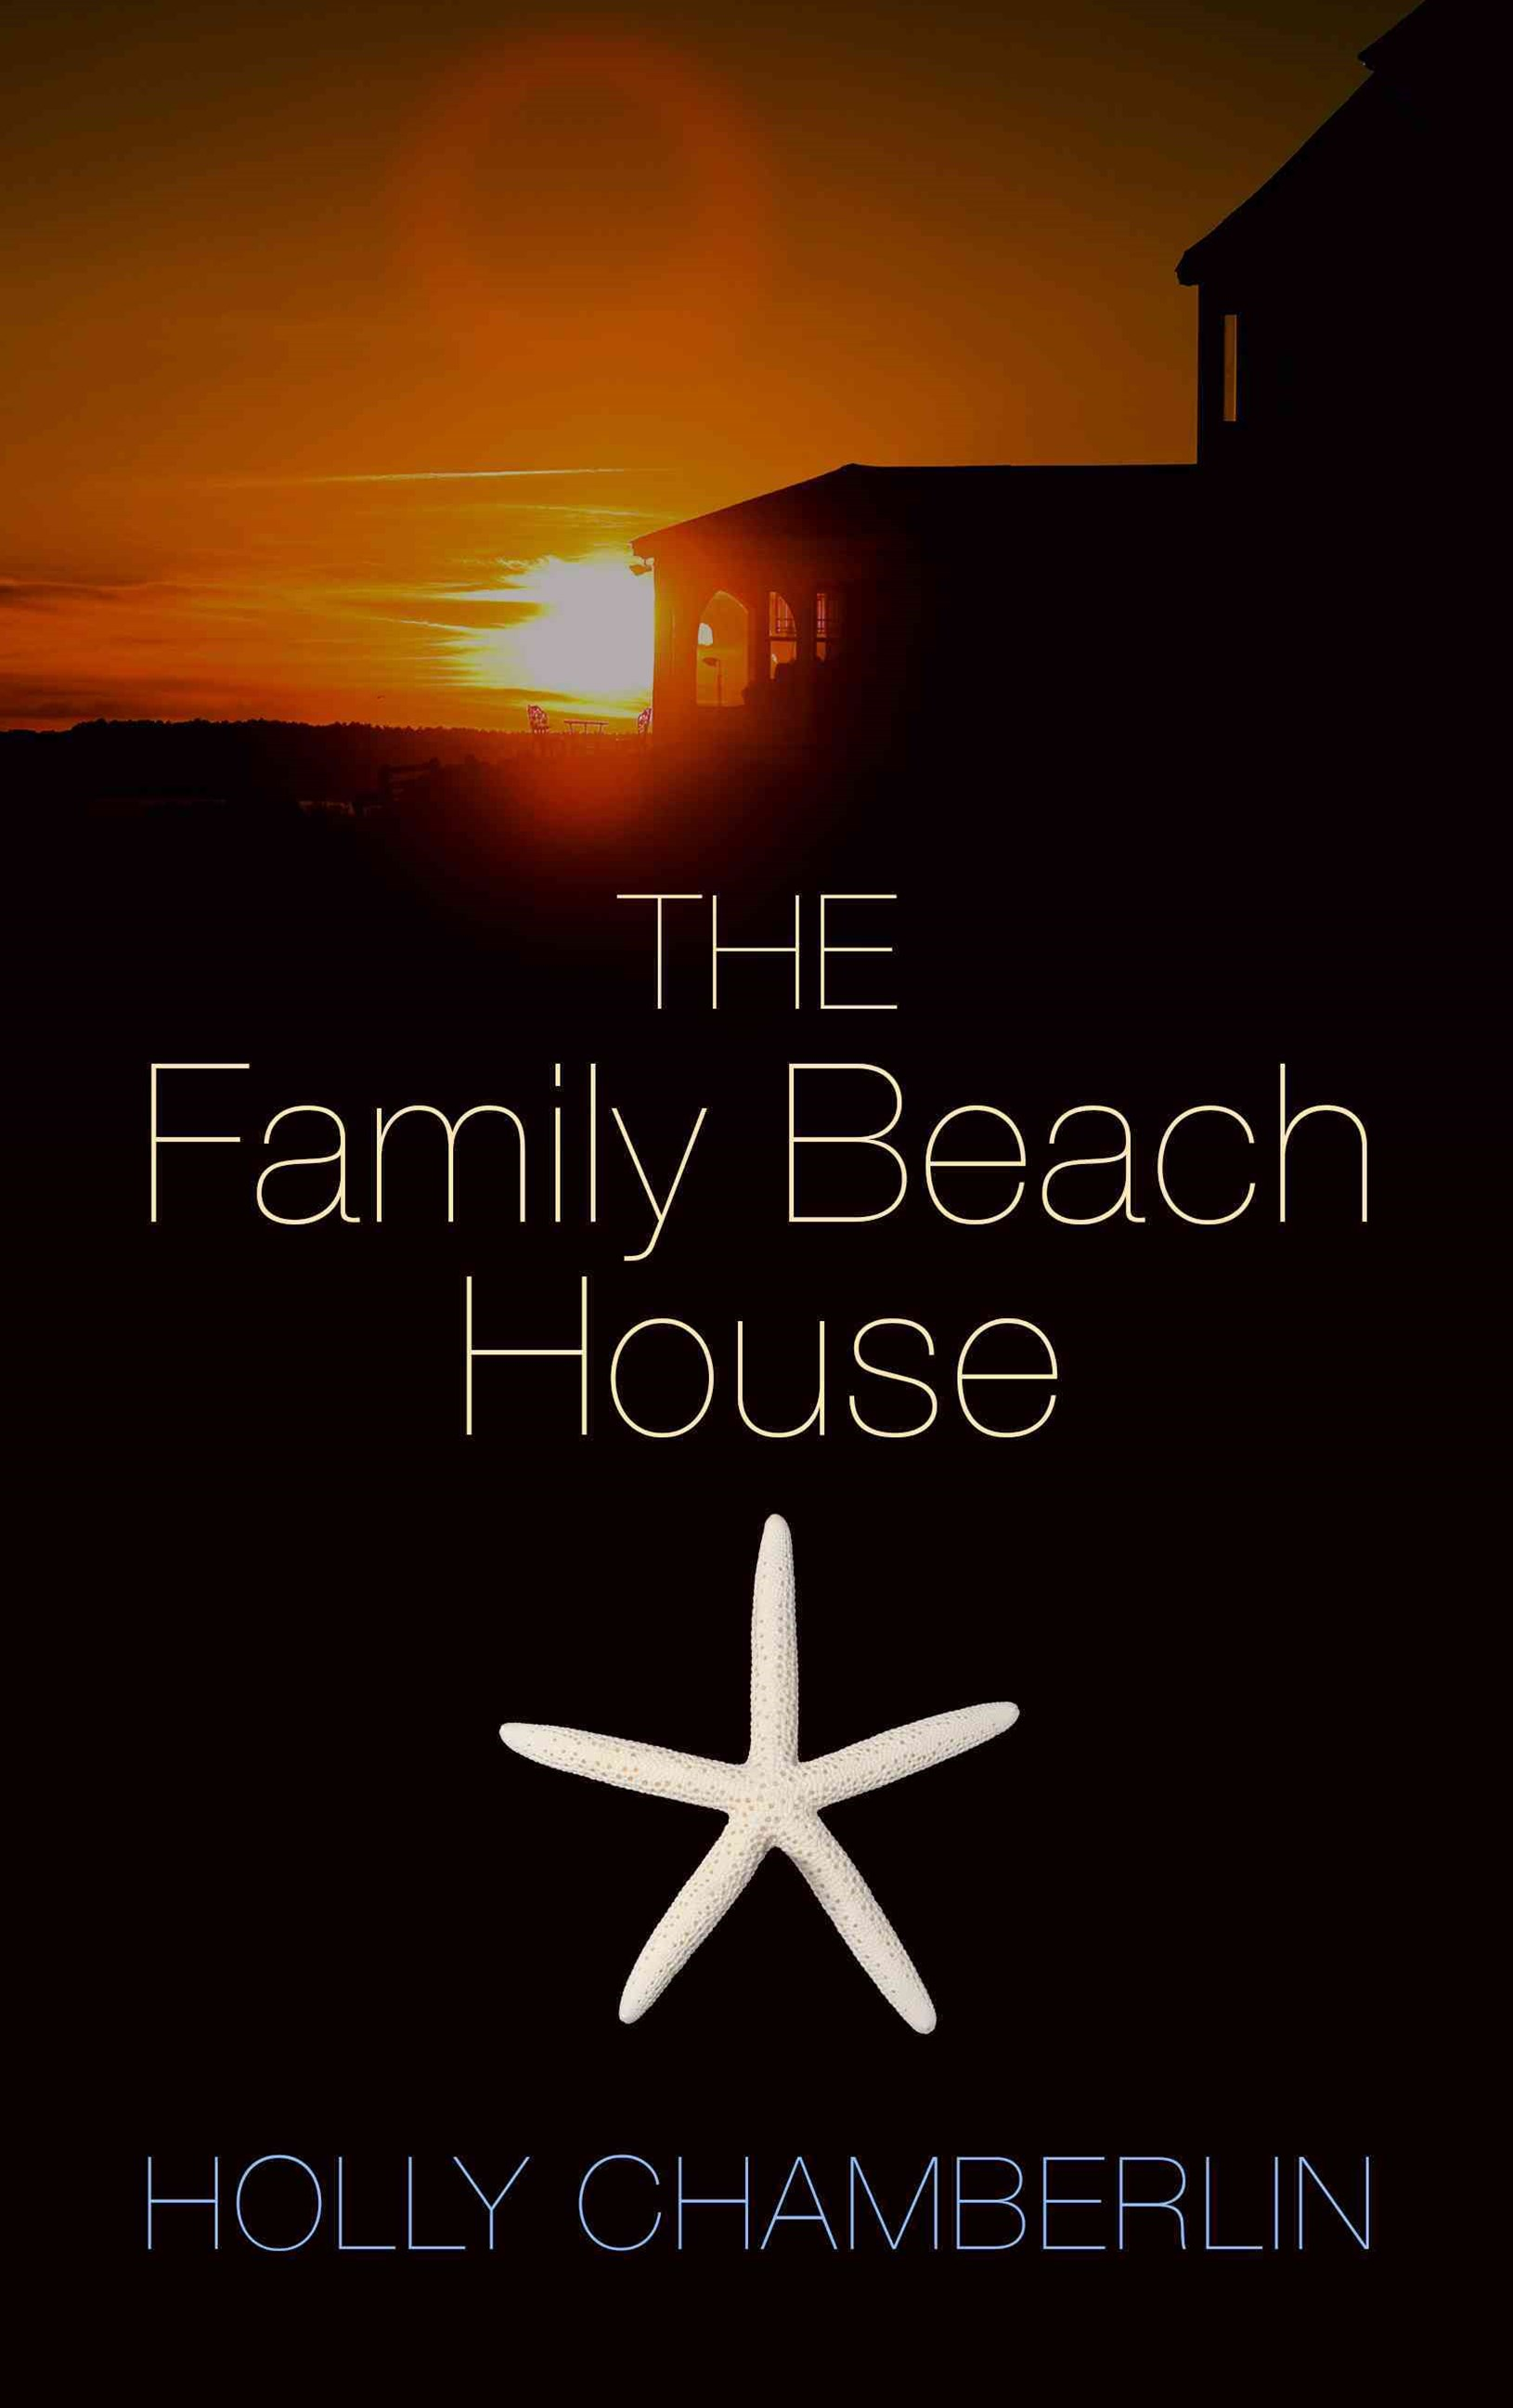 The Family Beach House